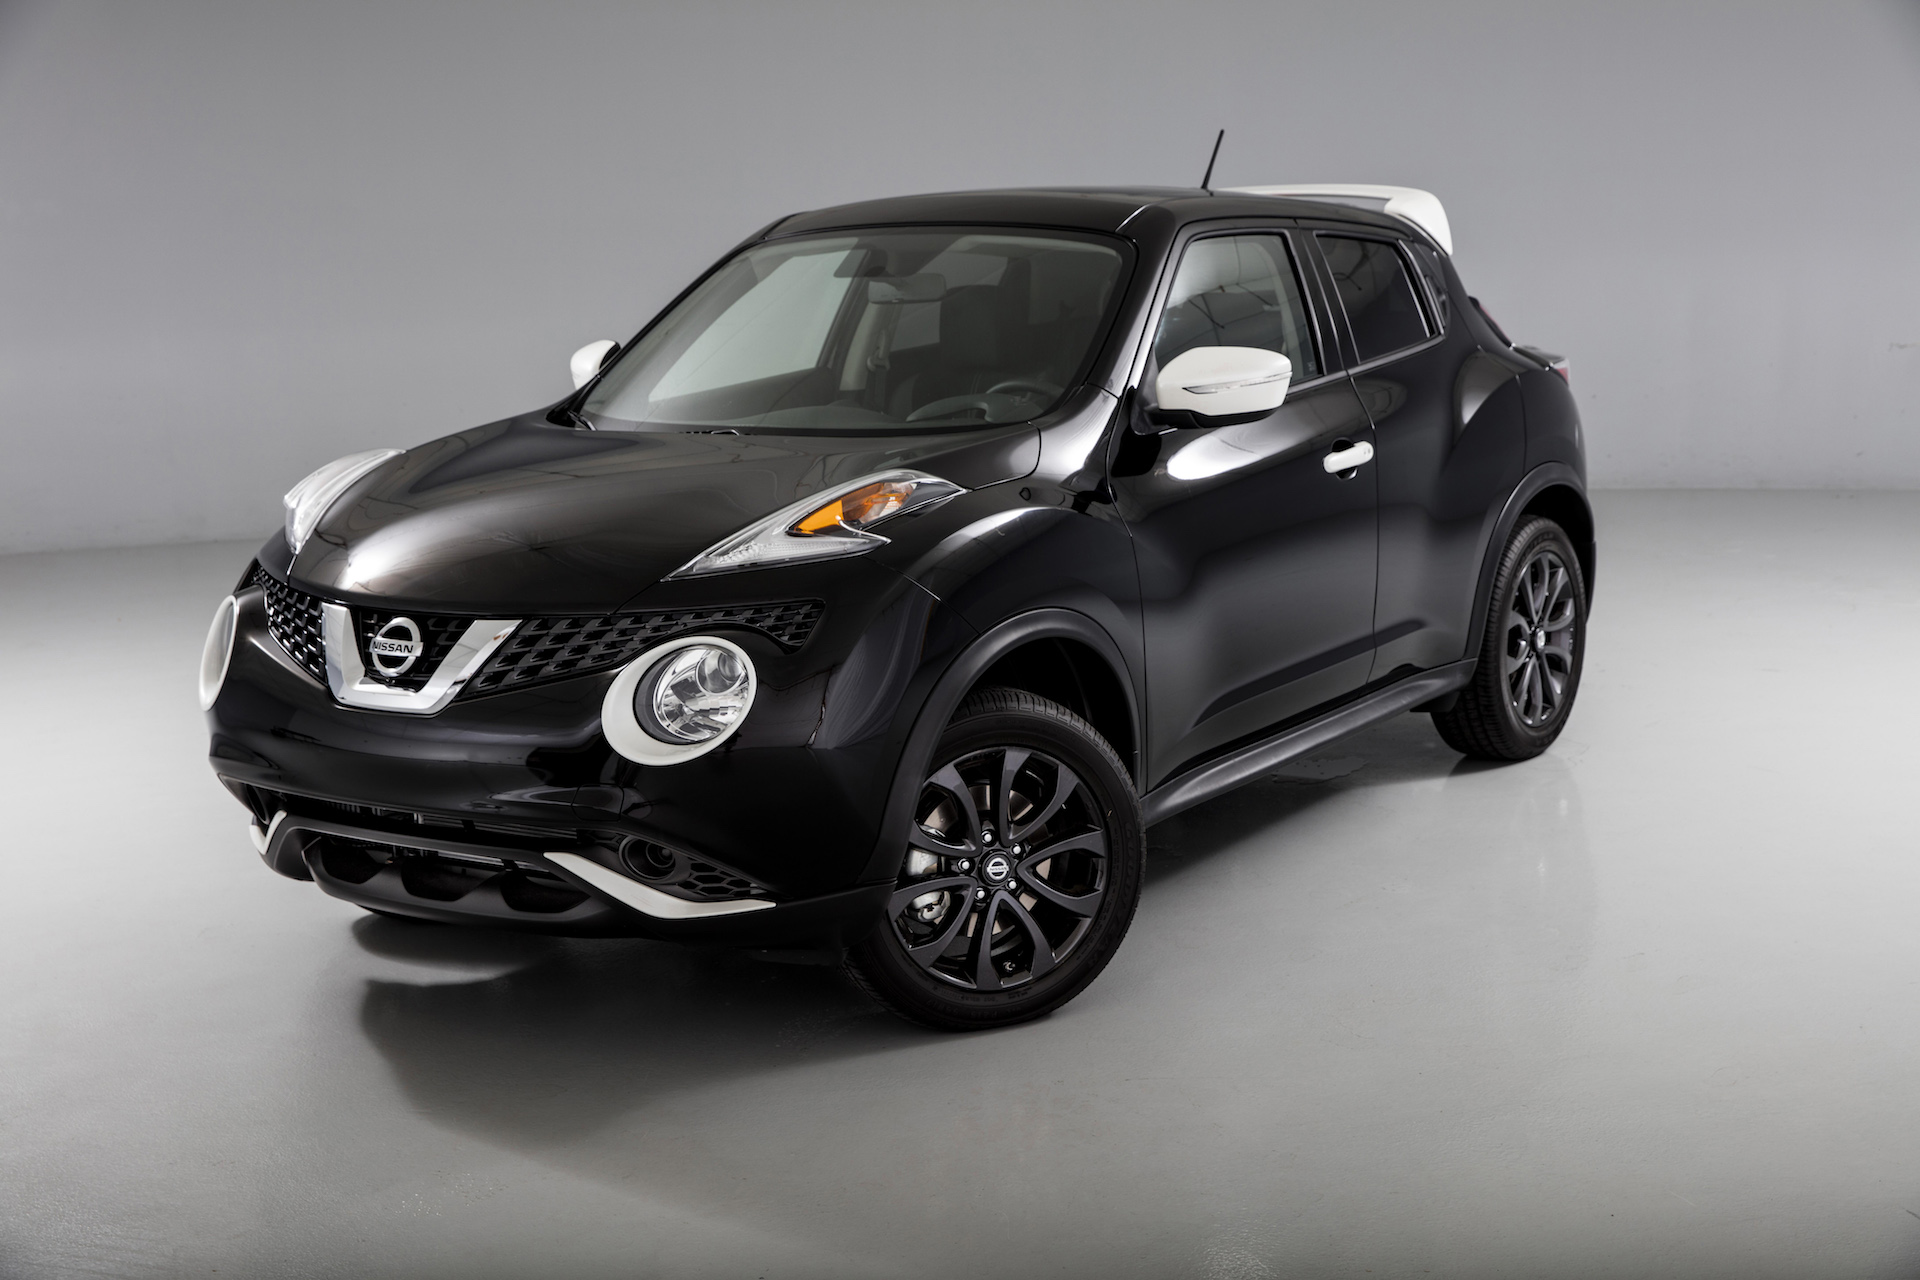 2017 nissan juke review ratings specs prices and for Nissan juke dauertest